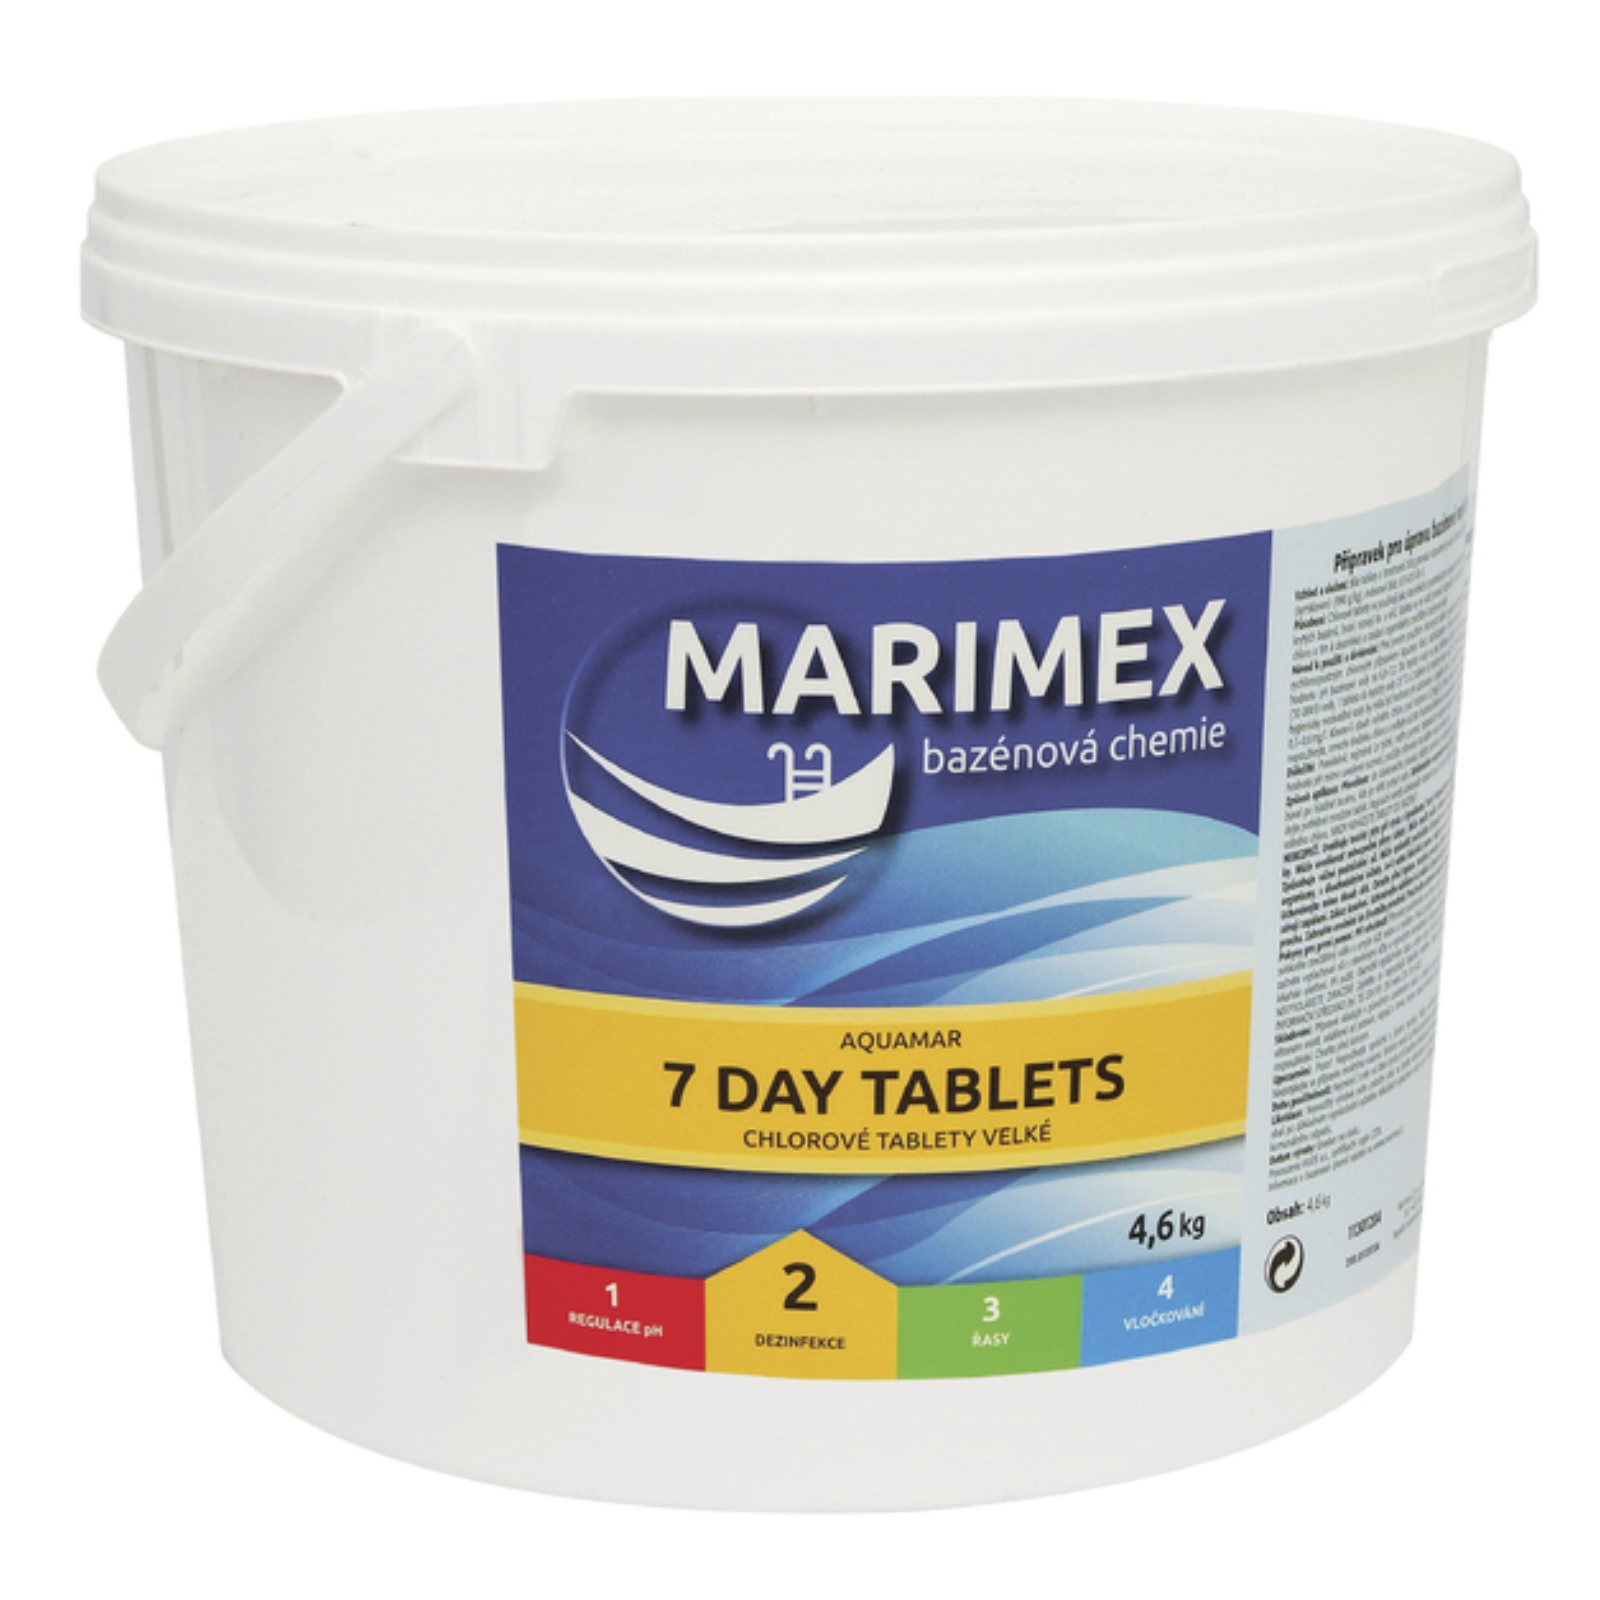 Marimex AQuaMar 7 Day Tablets 4,6 kg